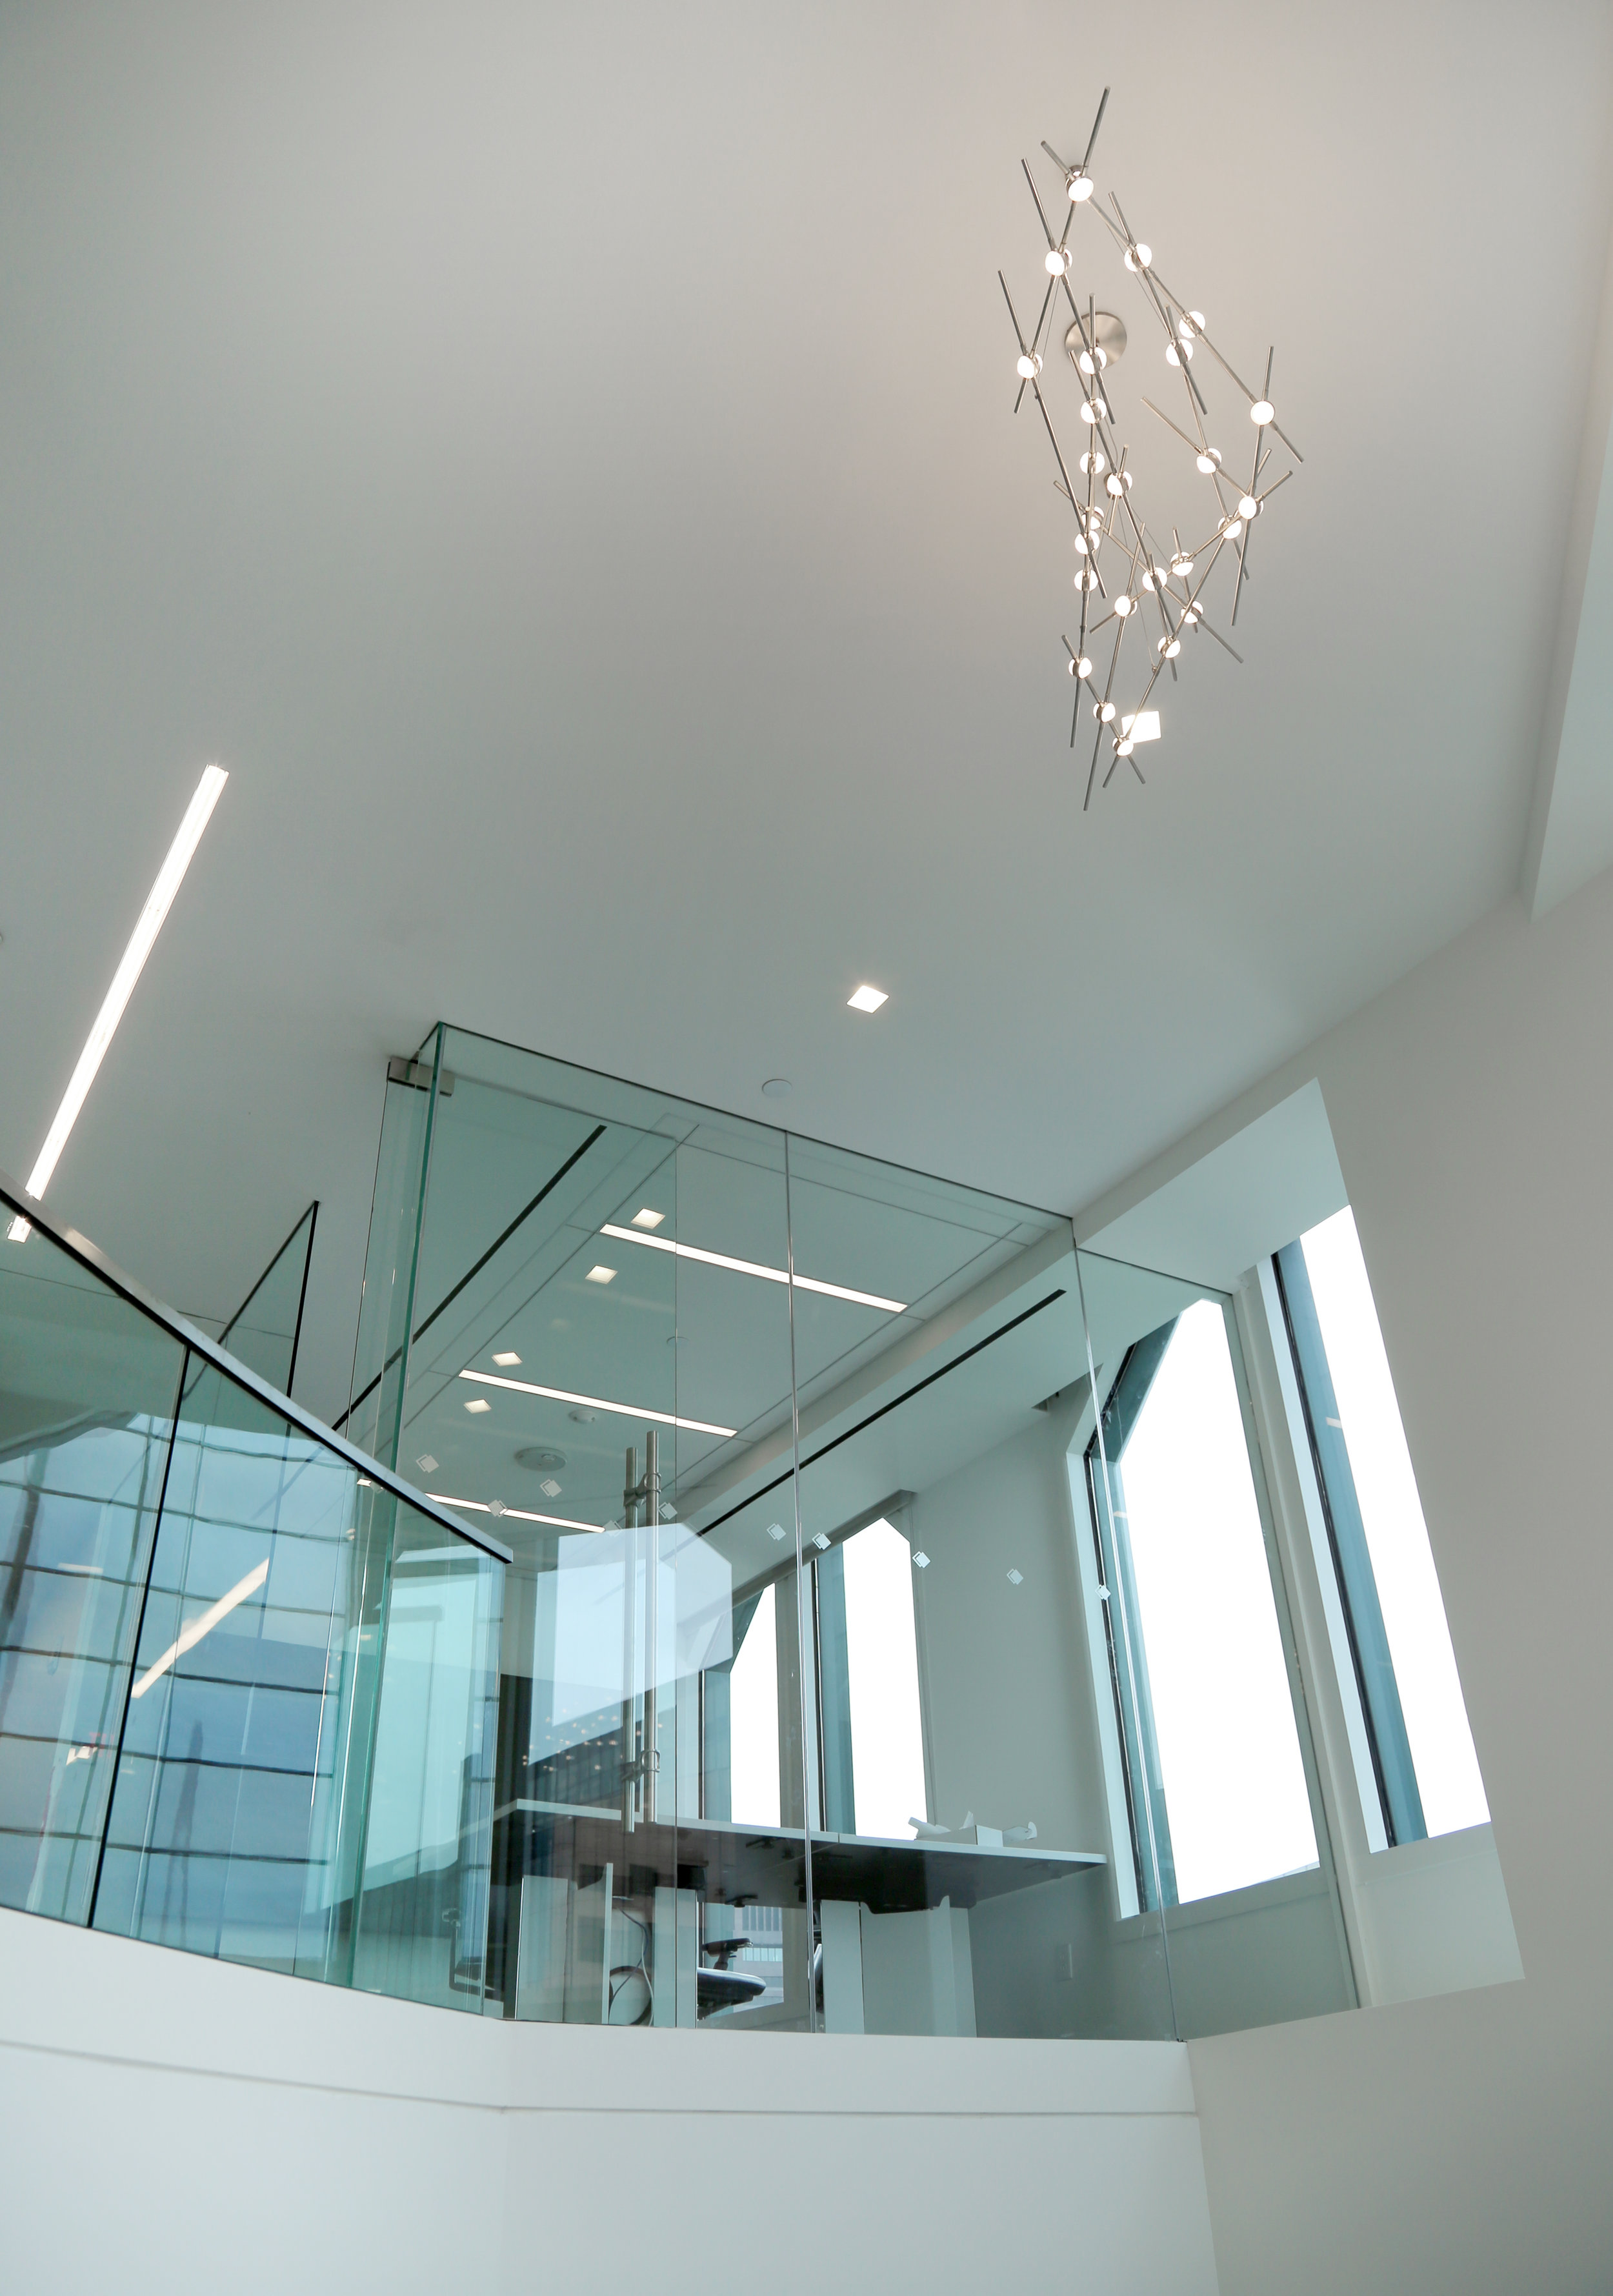 Floating Illume Frameless Conference Wall System at Windows - Spaceworks AI.jpg